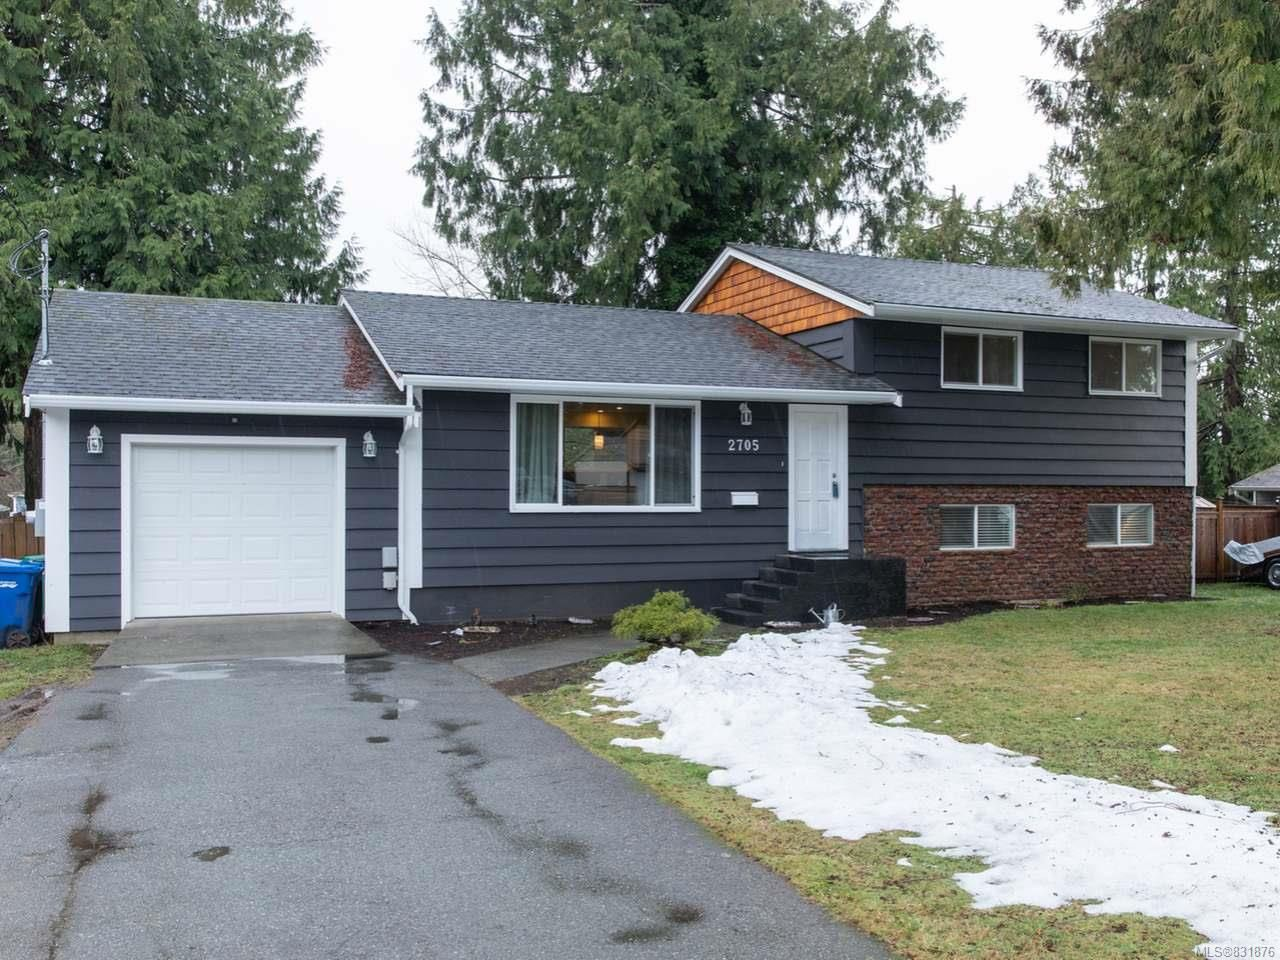 Main Photo: 2705 Willow Grouse Cres in NANAIMO: Na Diver Lake House for sale (Nanaimo)  : MLS®# 831876